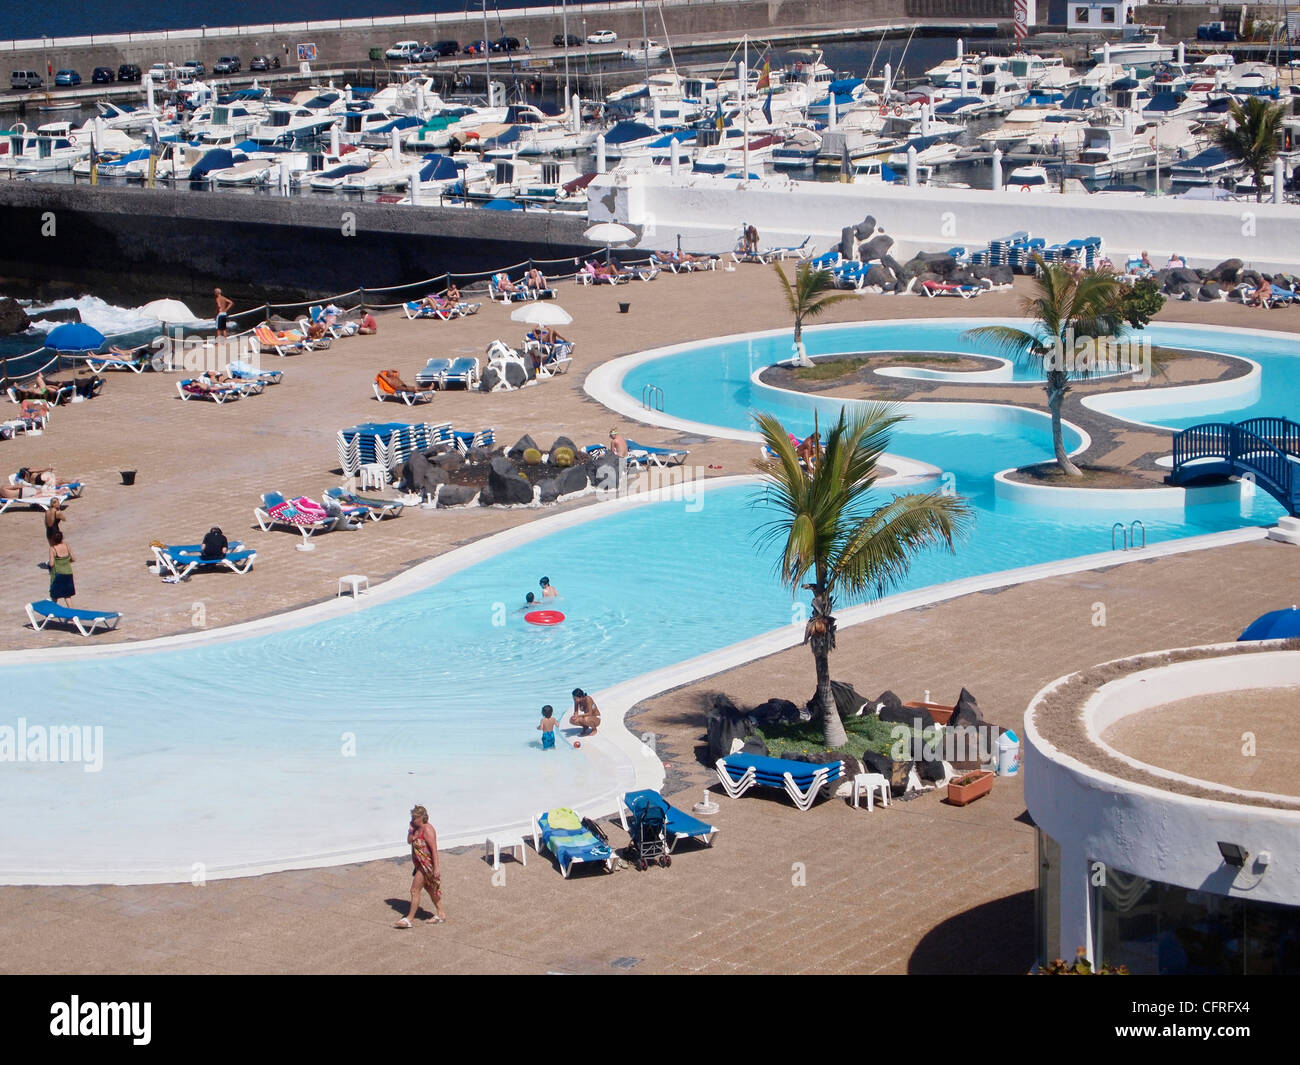 SWIMMING POOLS AT THE OASIS LOS GIGANTES TENERIFE SPAIN ...